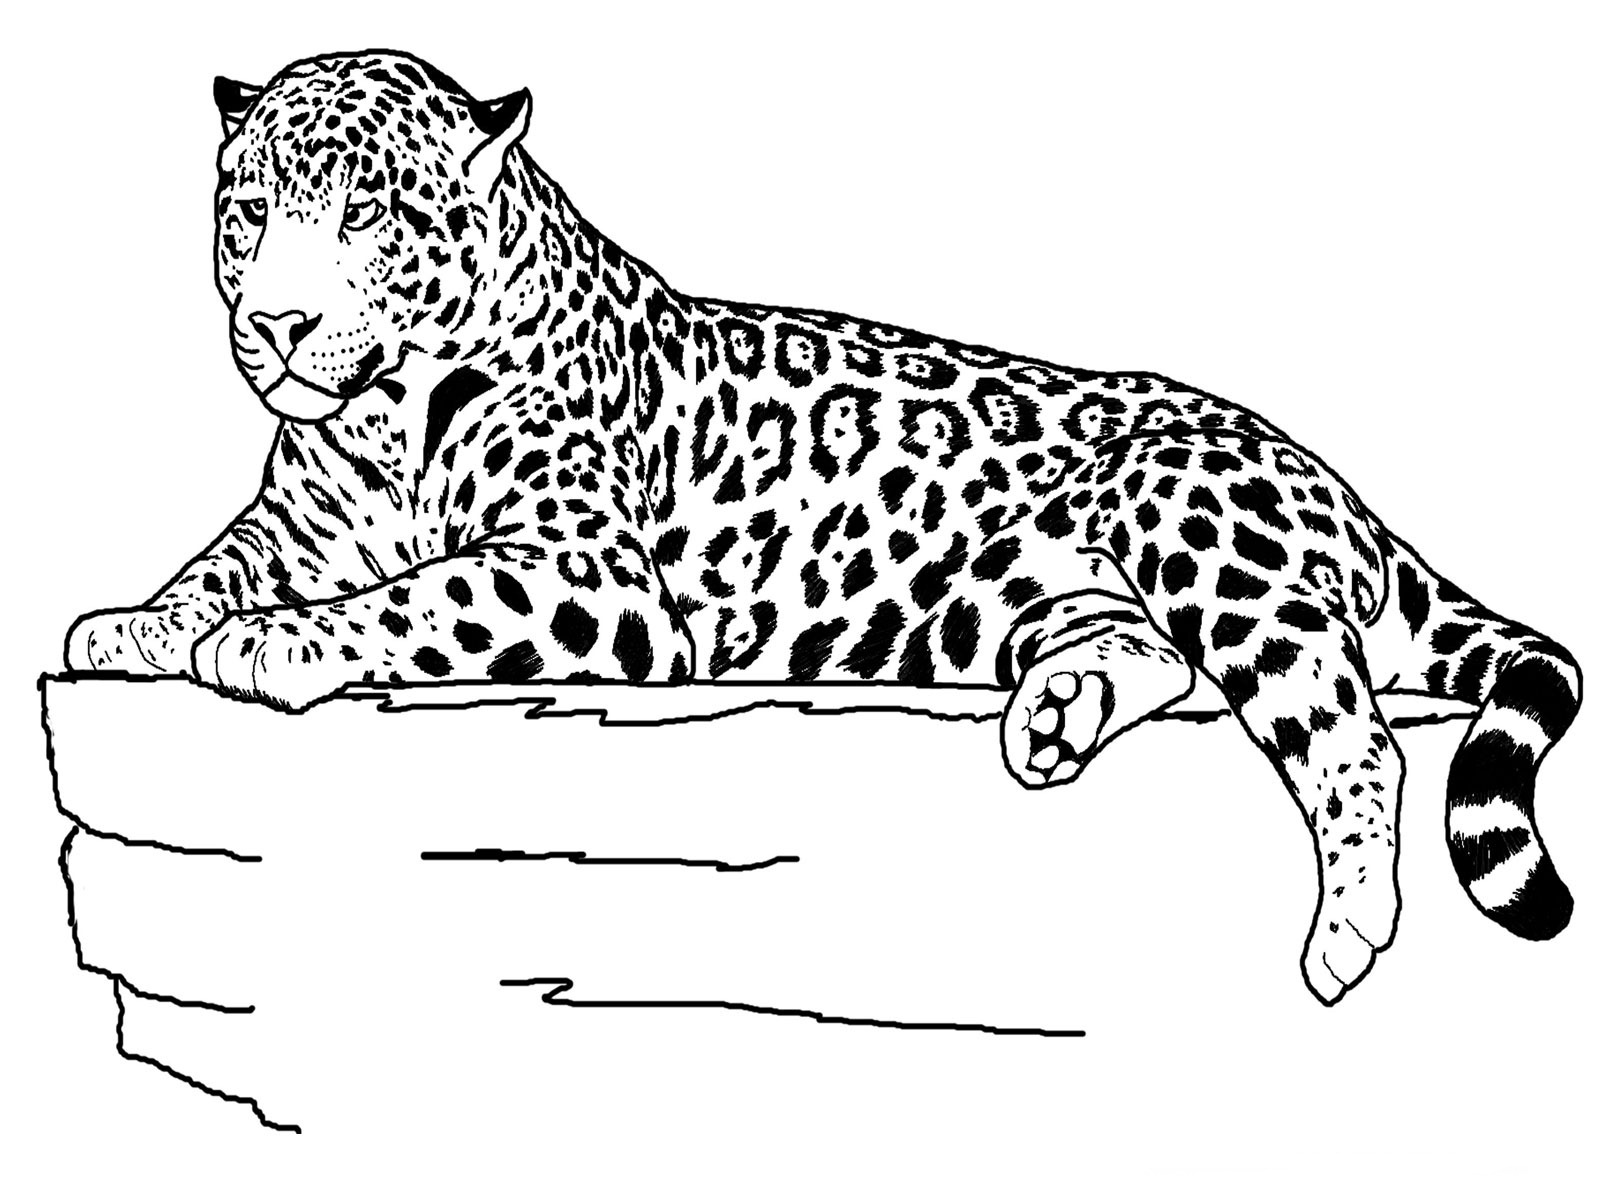 coloring pages cheetah - photo#8